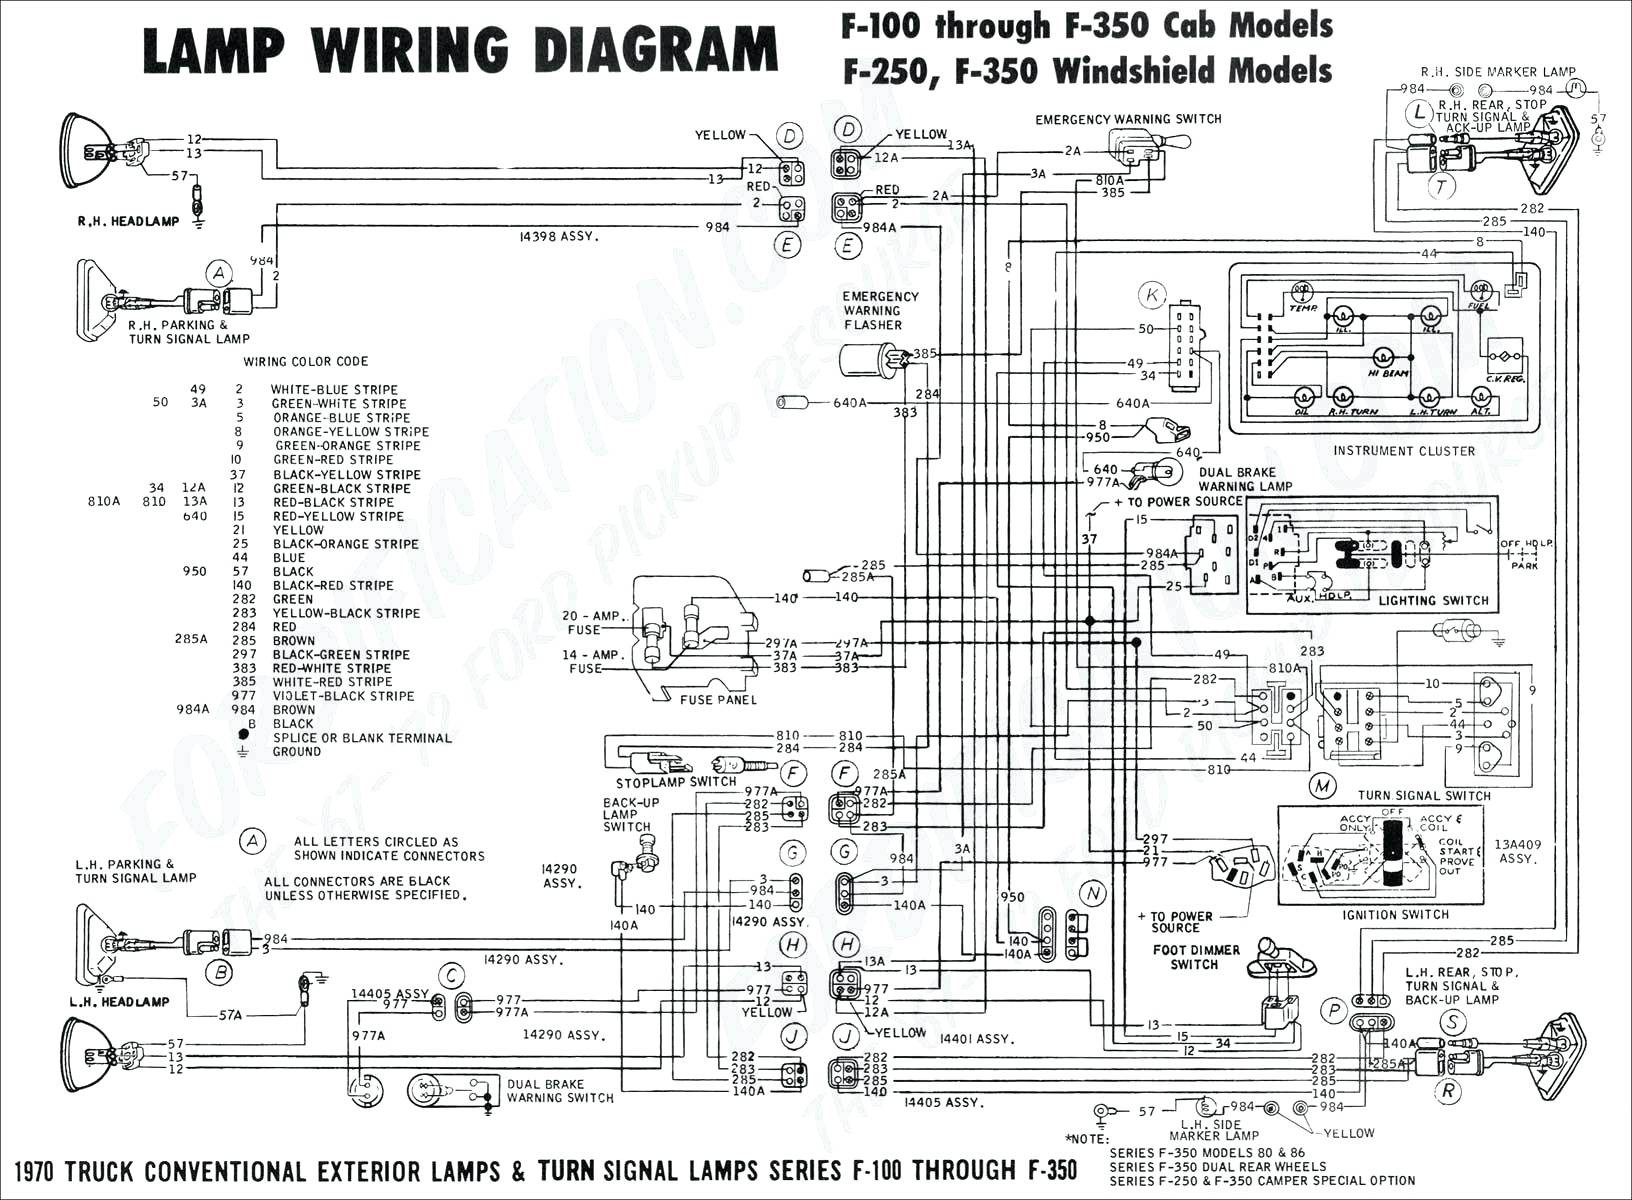 horse trailer wiring diagram Download-Horse Trailer Wiring Diagram Inspirational Small Utility Trailer Wiring Diagram Wire with Basic Pics Diagrams 17-h